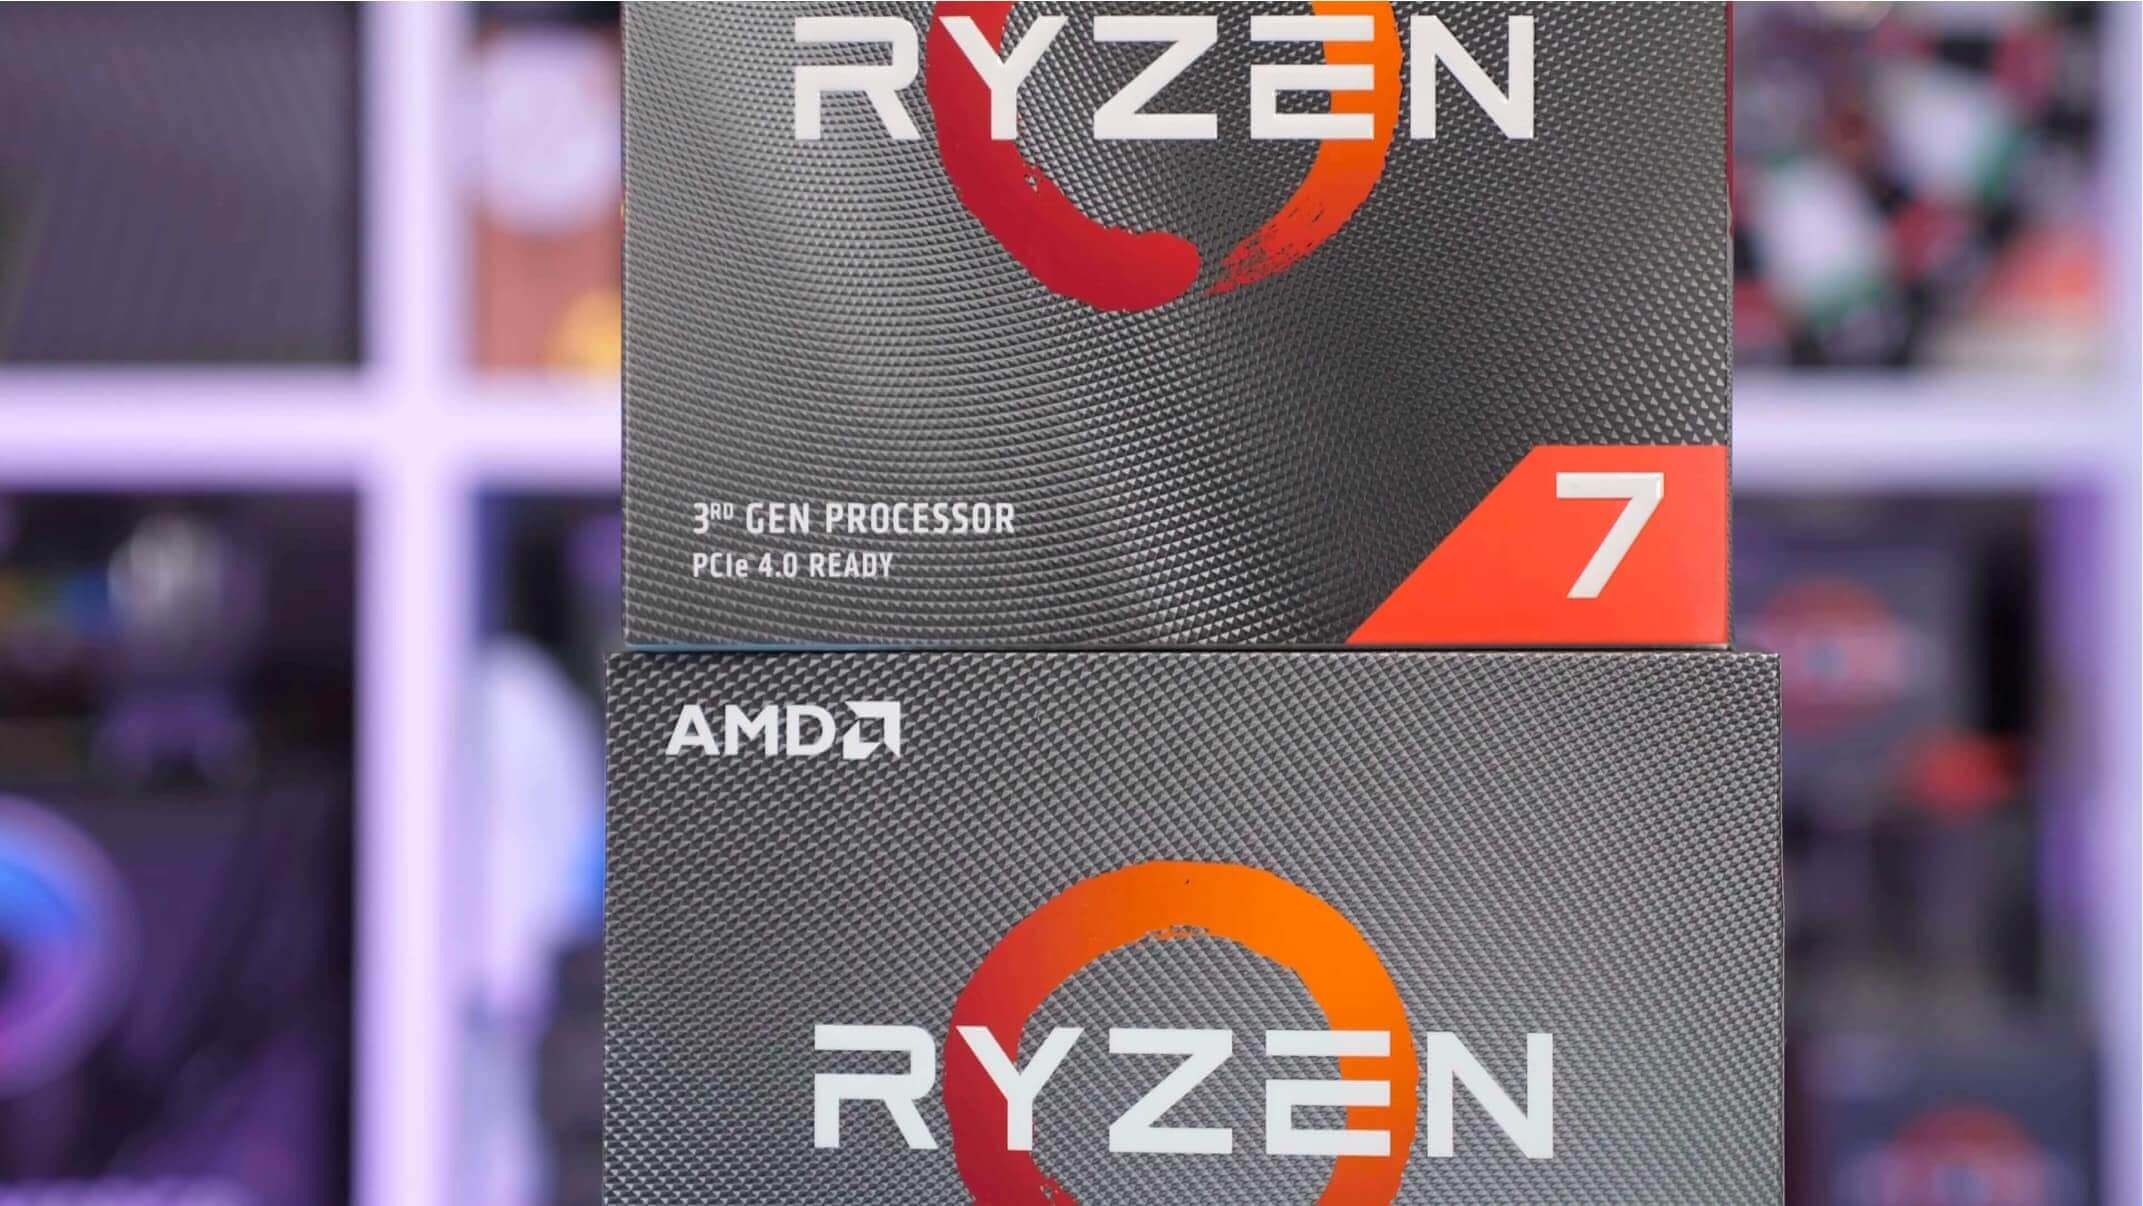 Consumer Zen 3 CPUs are launching this year, confirms AMD